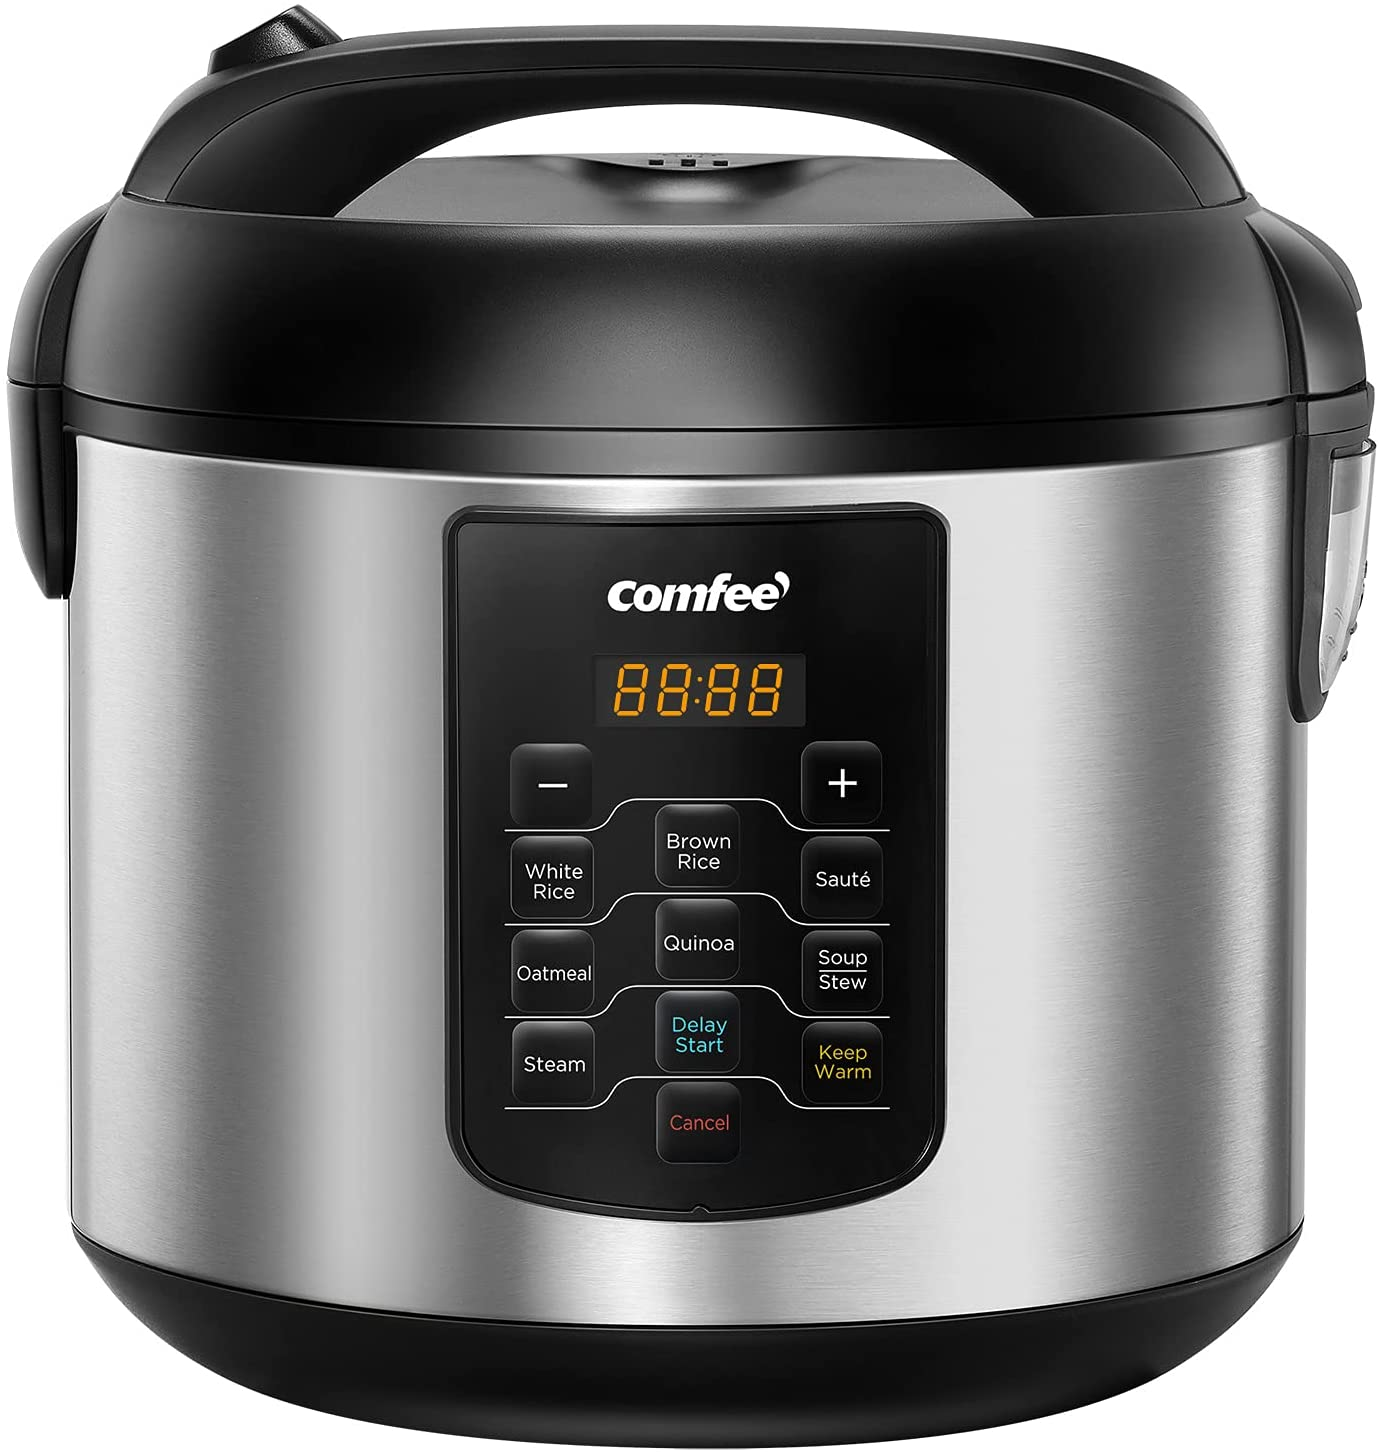 COMFEE' Rice Cooker, 8-in-1 Stainless Steel Multi Cooker, Slow Cooker, Steamer, Saute, and Warmer, 5.2 QT, 20 Cups Cooked, Brown Rice, Quinoa and Oatmeal, 8 One-Touch Programs